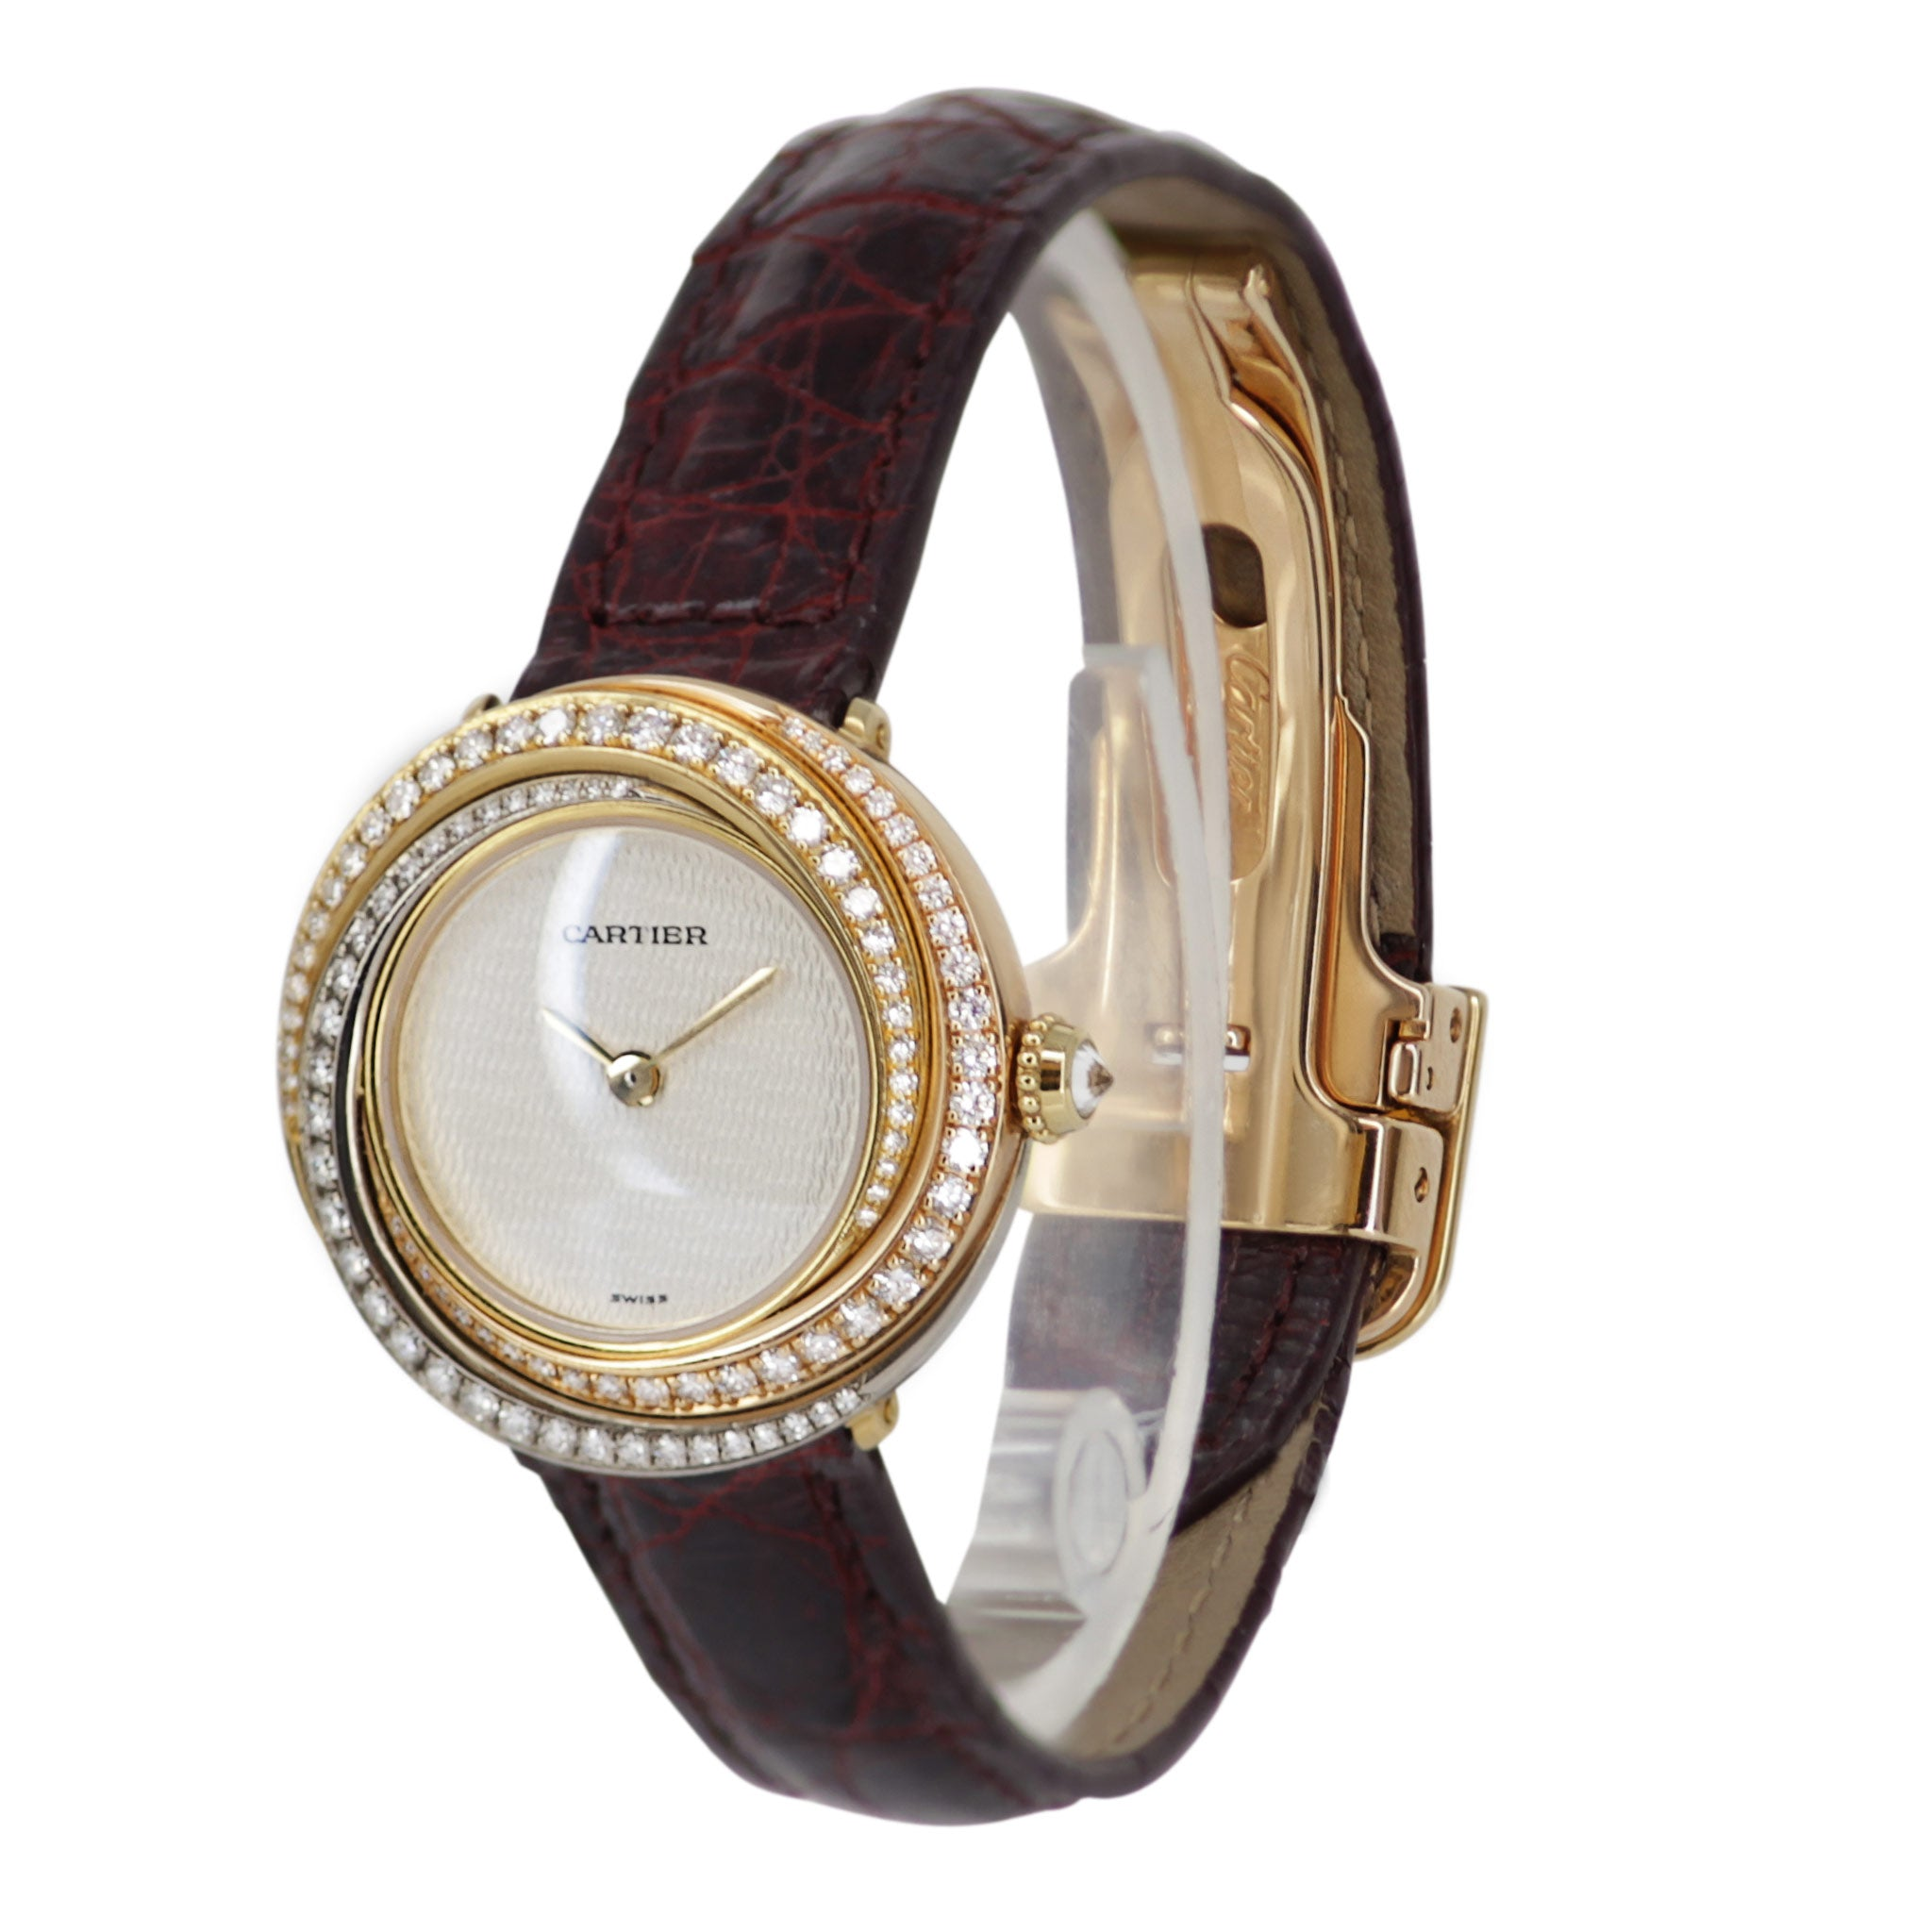 Cartier 18k Yellow Gold with Diamond Bezel Watch